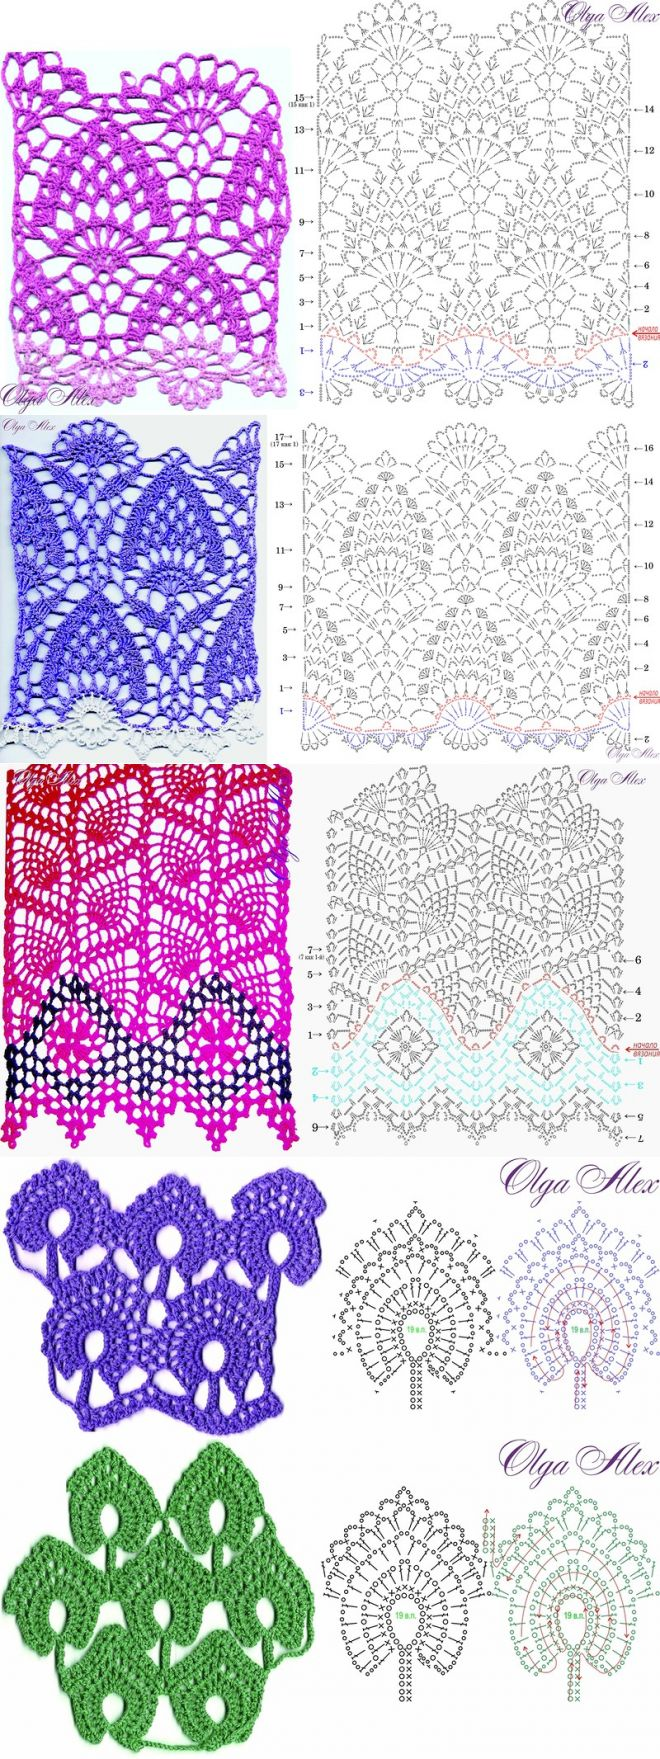 Crochet Patterns... ♥ Deniz ♥                                                                                                                                                                                 More